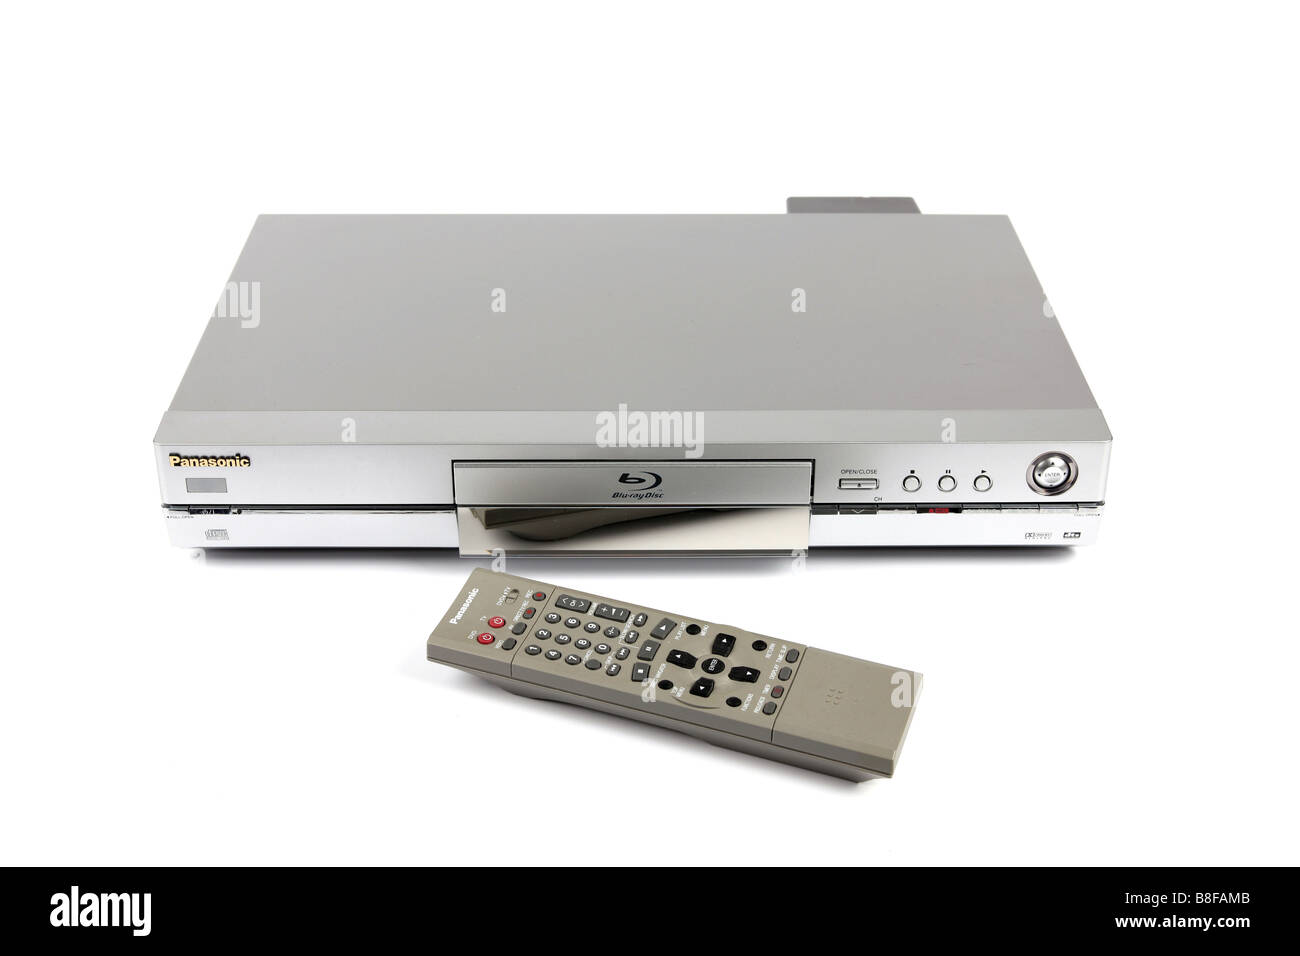 A DVD Blu Ray Digital TV Recorder and remote against a white background - Stock Image